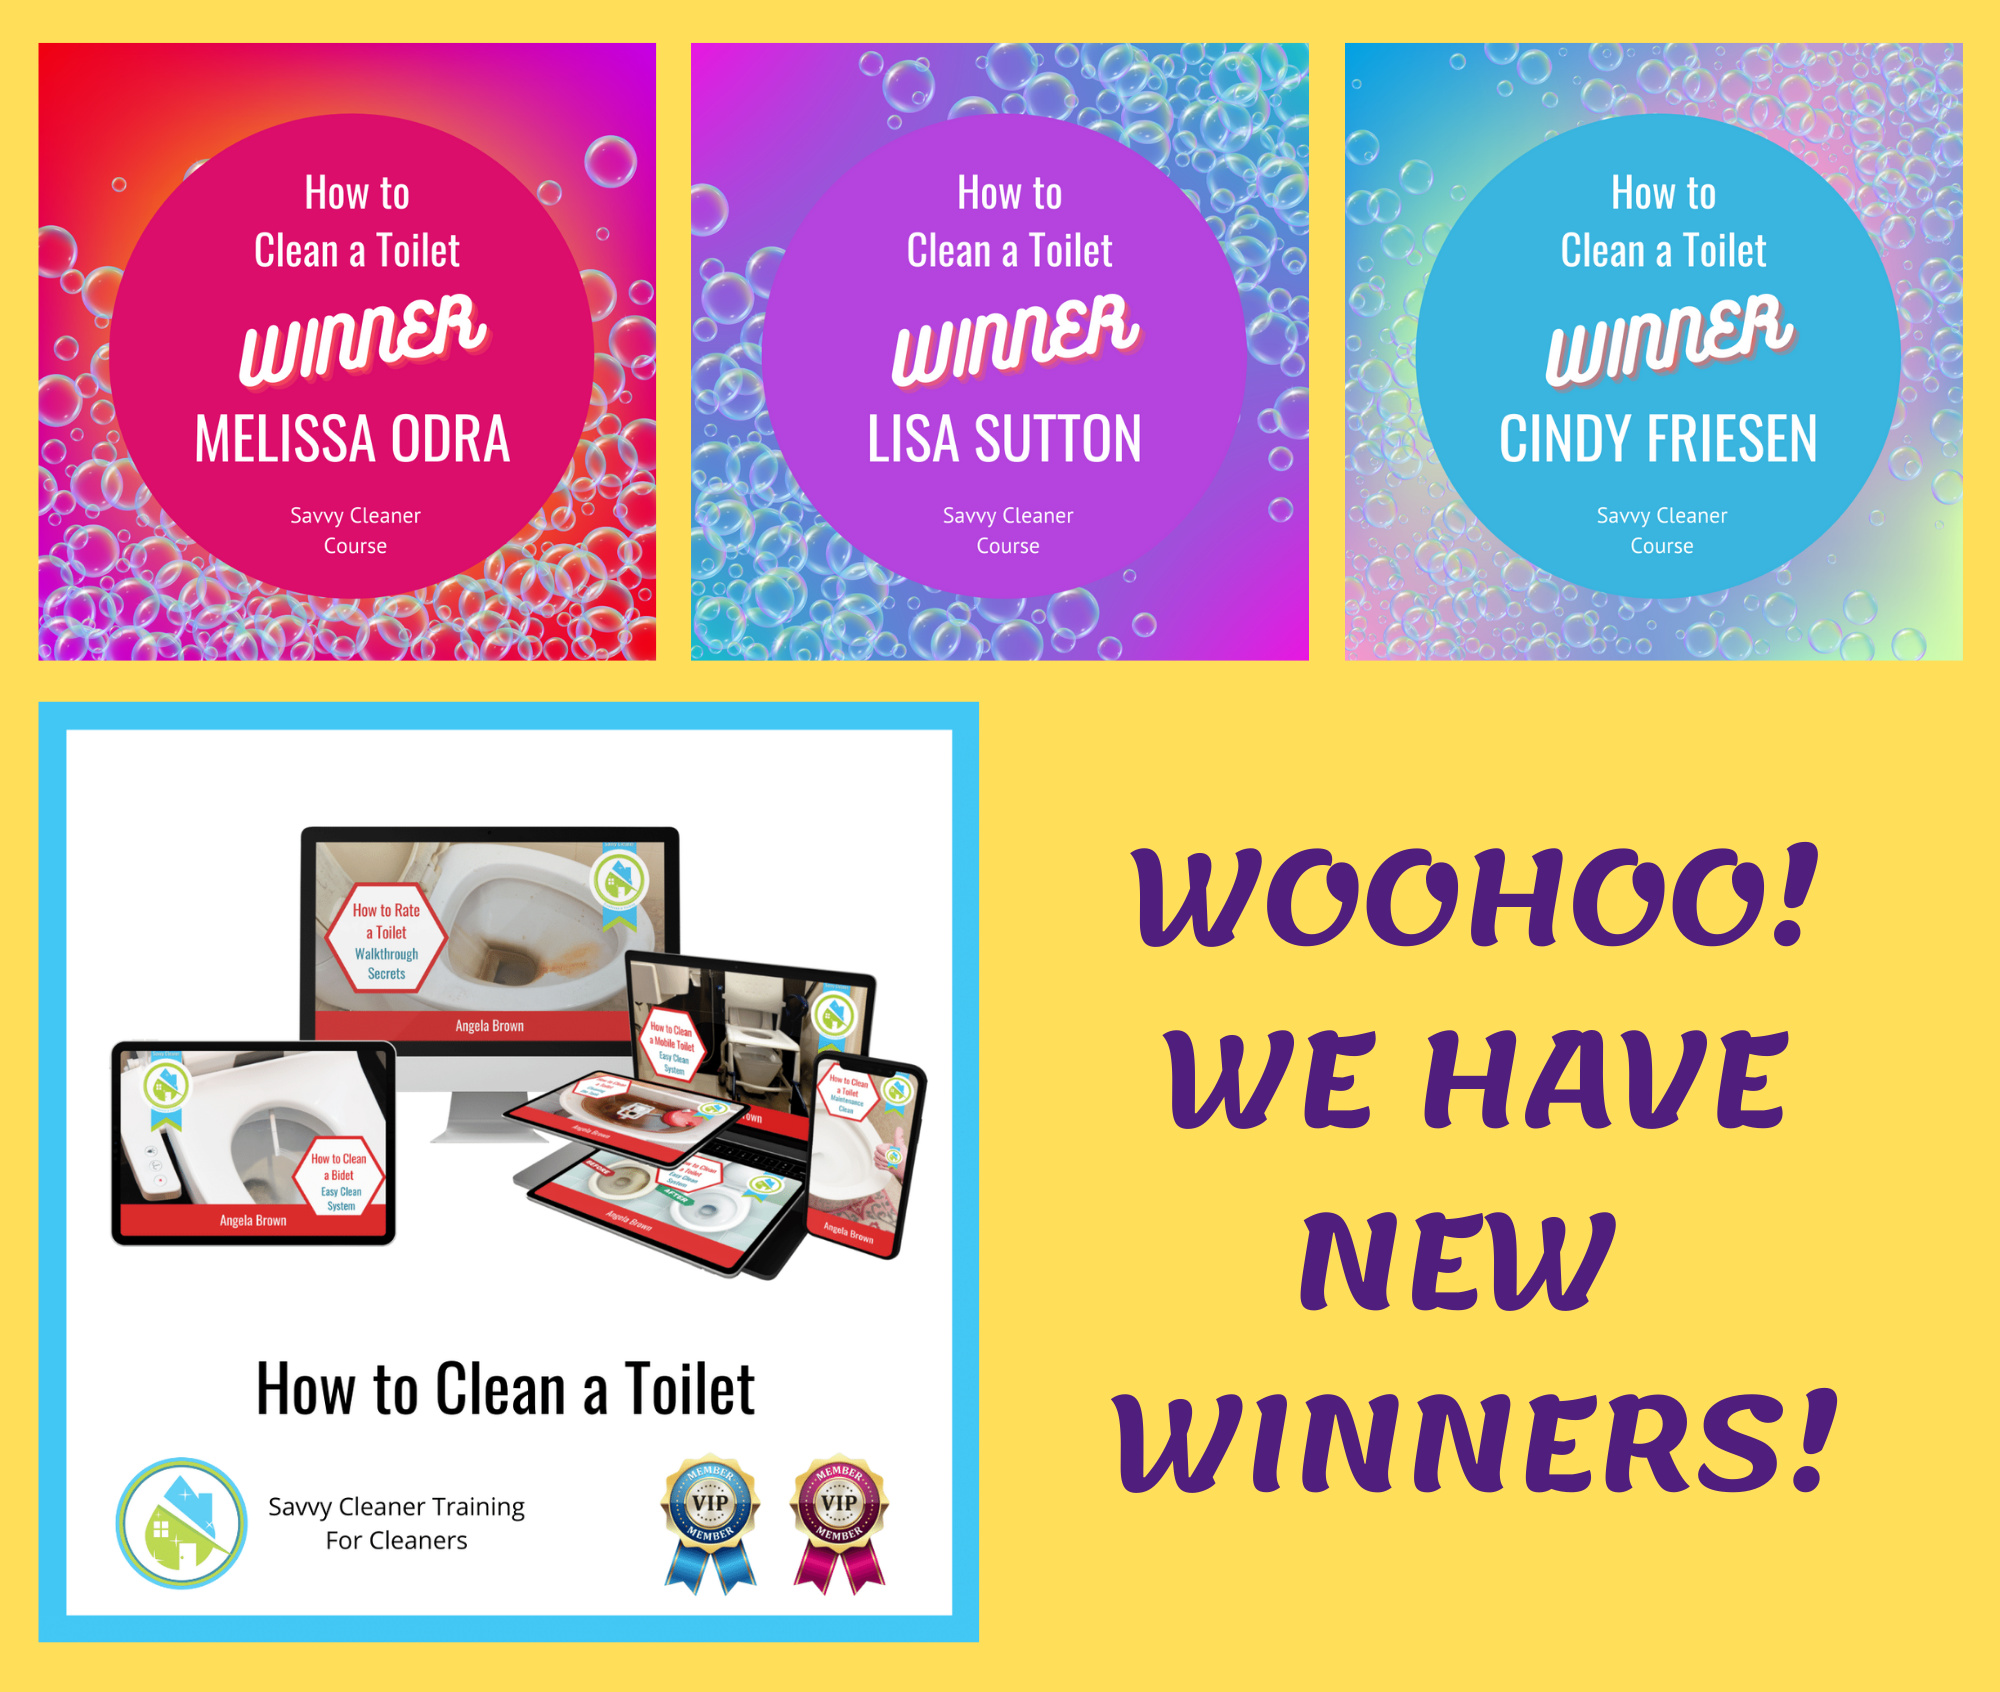 How to Clean a Toilet Winners Savvy Cleaner Training